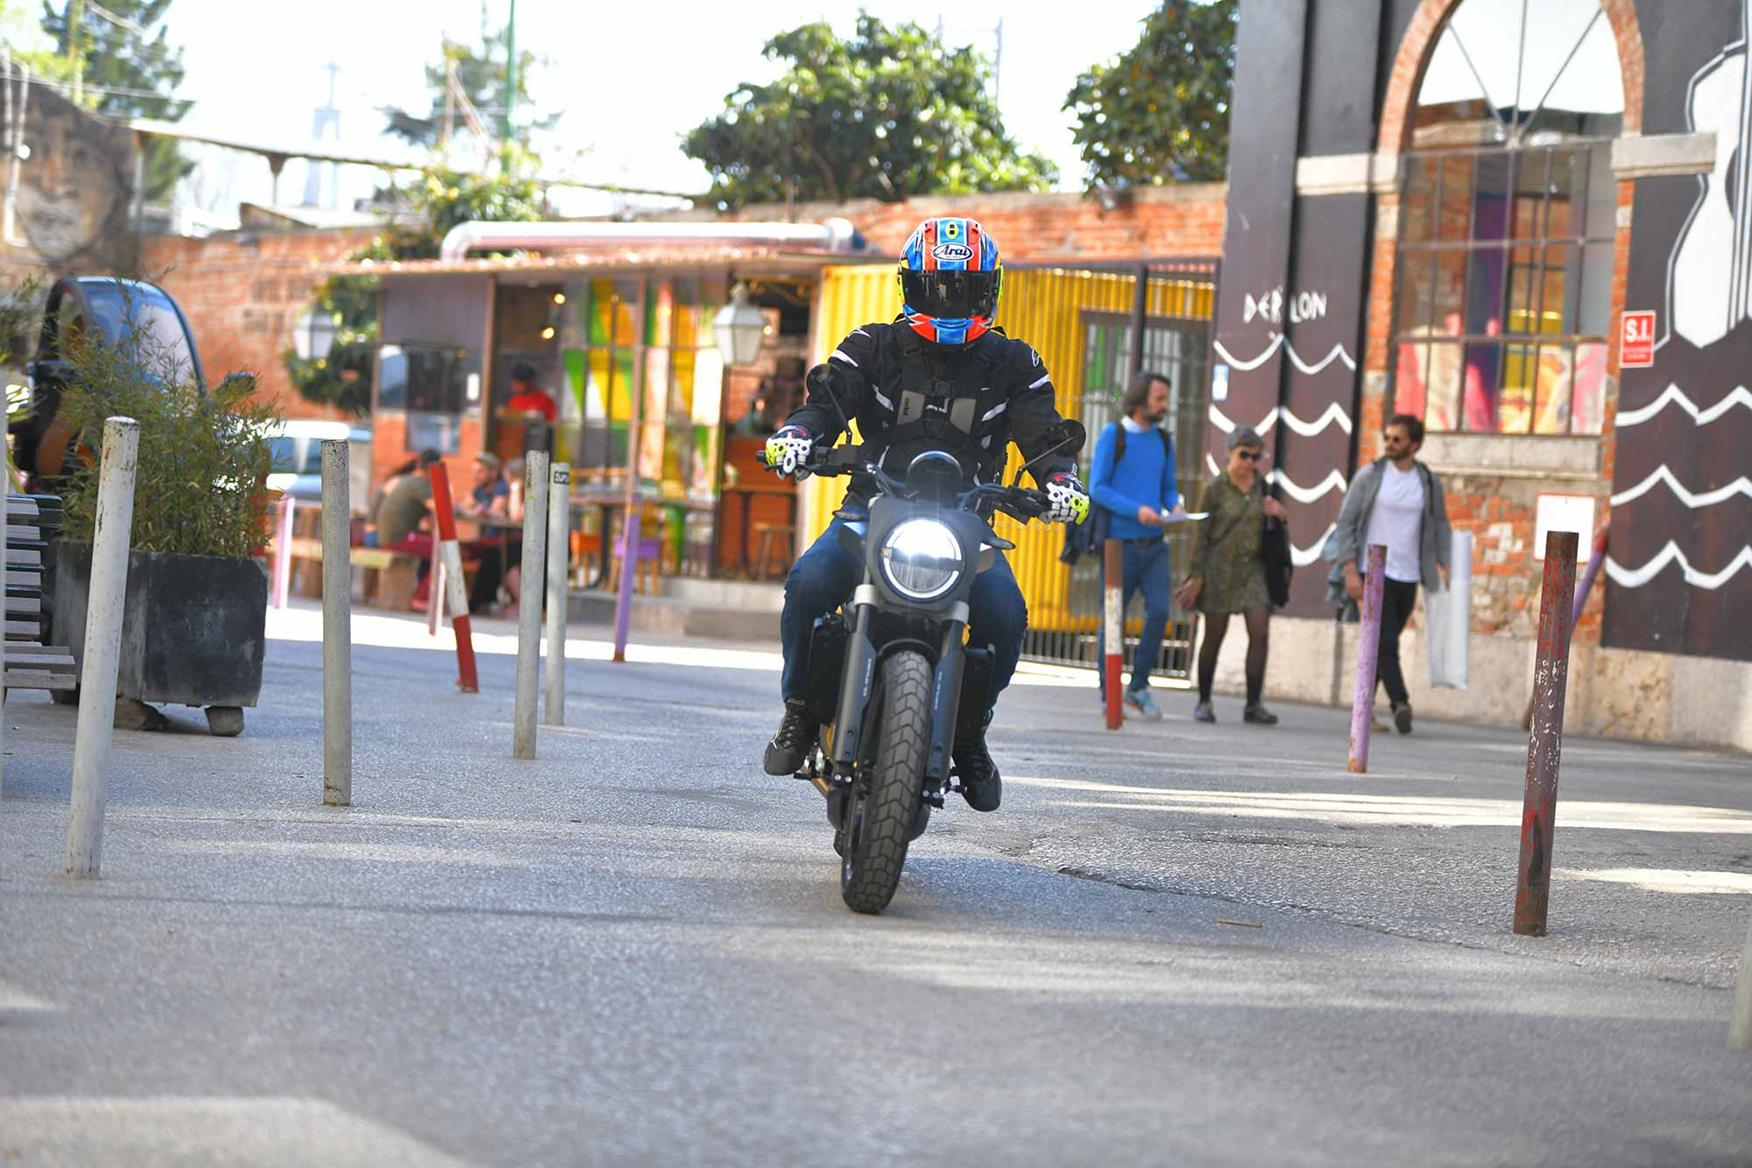 Town riding on the Husqvarna Svartpilen 701